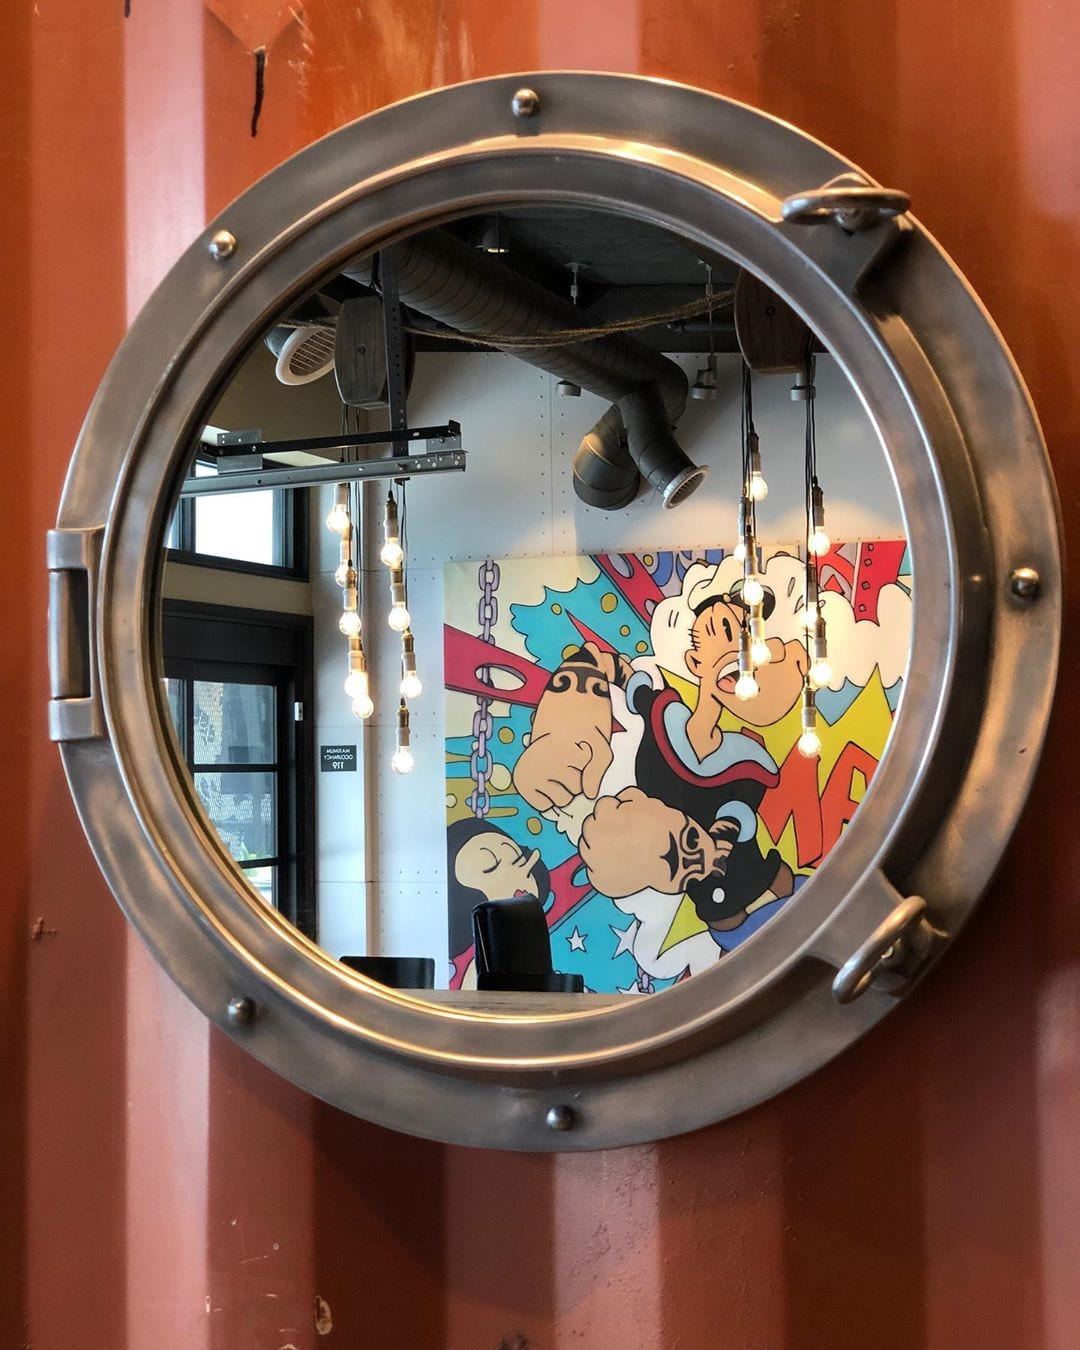 Eye spy the sailor man with the spinach can! #popeyethesailorman #hotelzephyrsf #porthole #eyespy #hotelzephyr